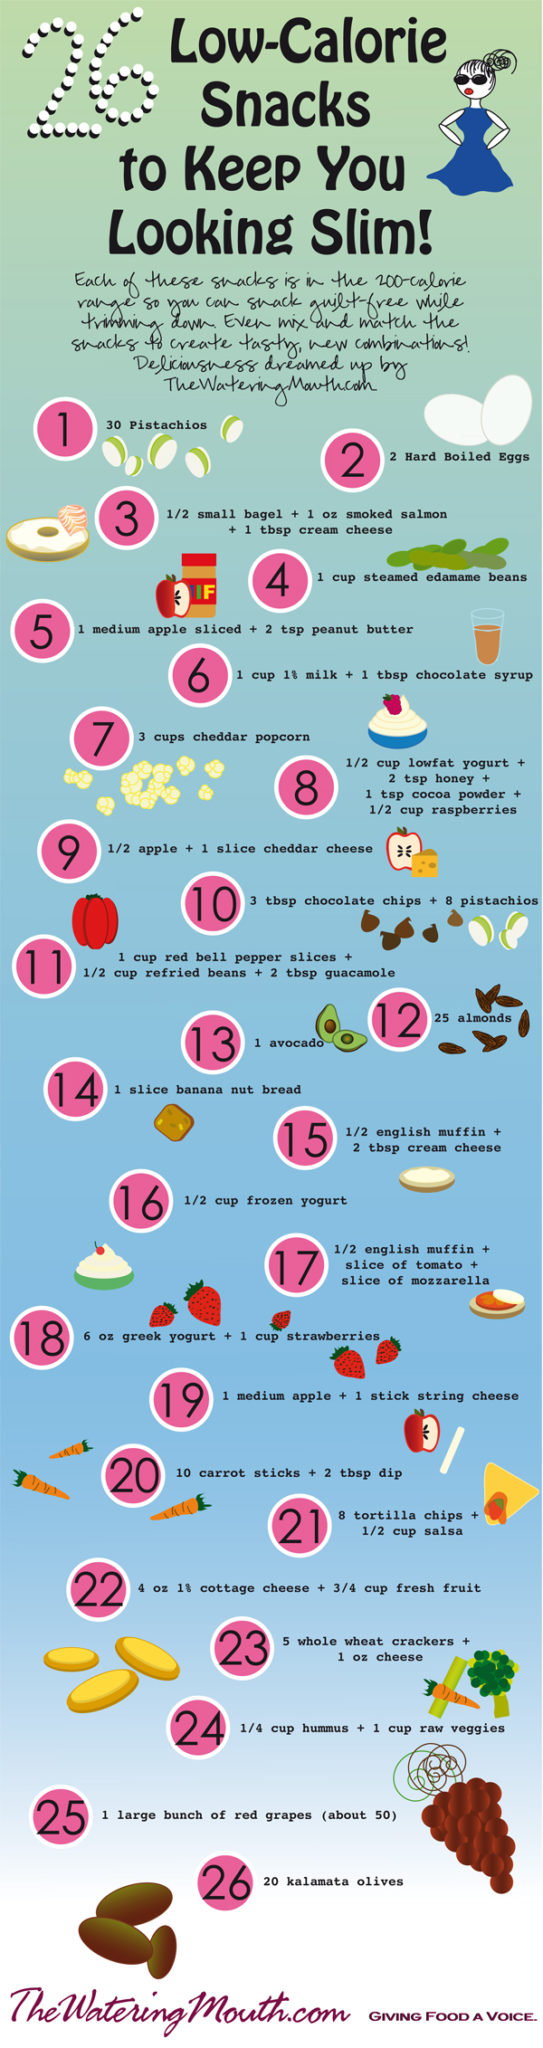 Low-Calorie Snacks Diet Infographic